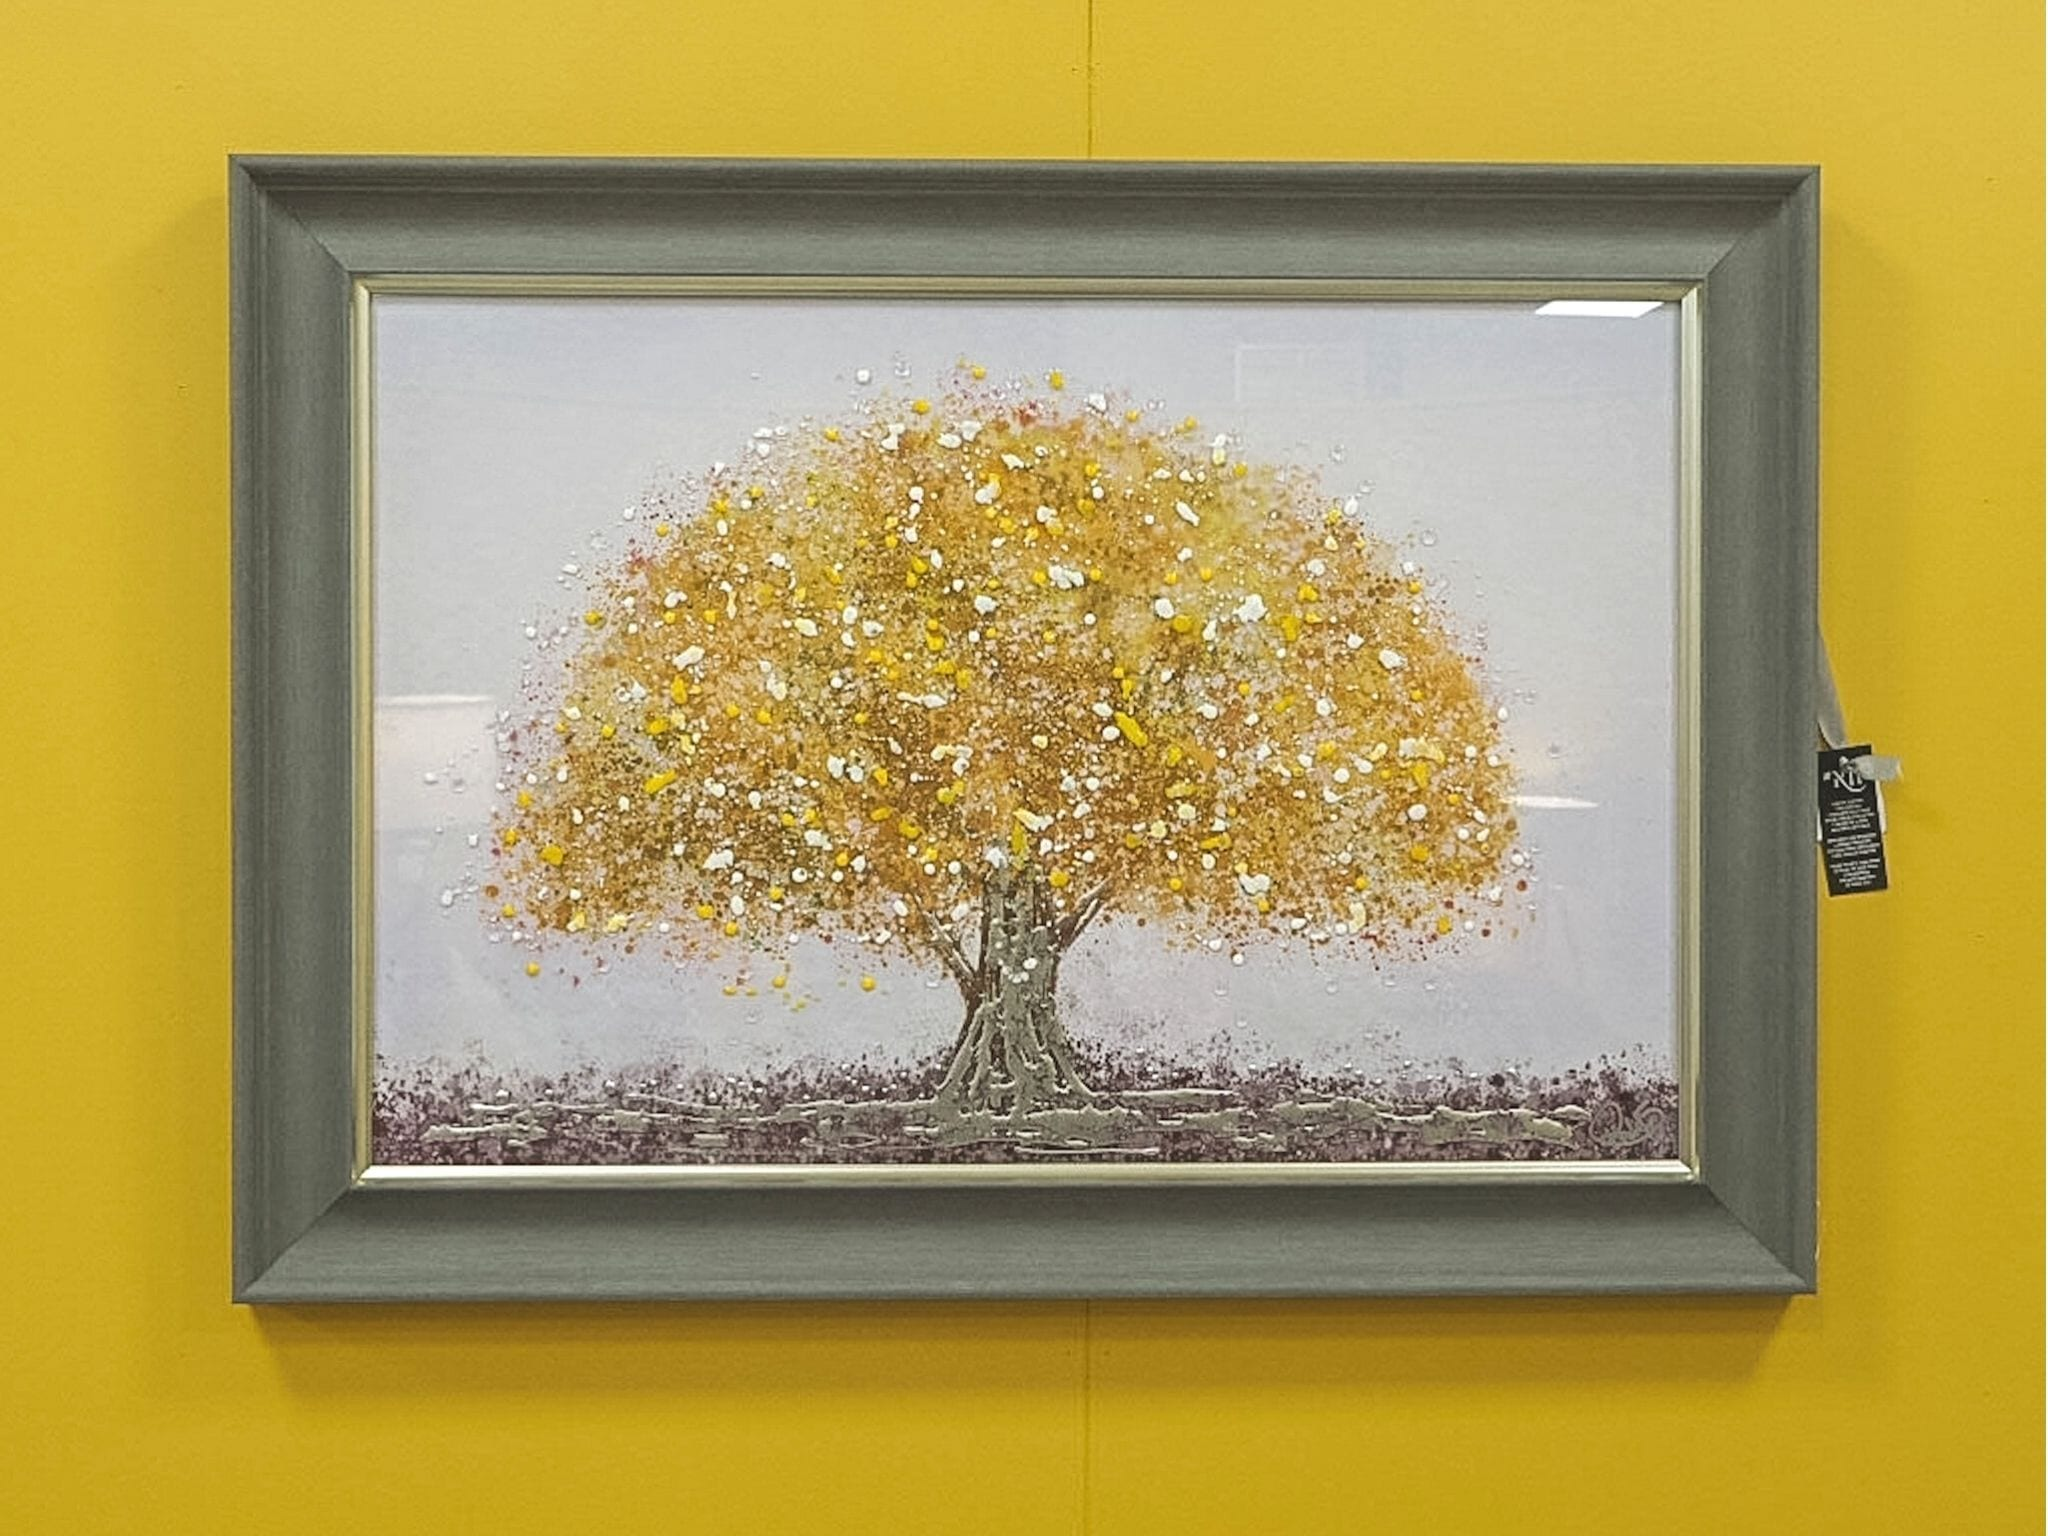 'Spring is Here' yellow 60x90 Framed Wall Art